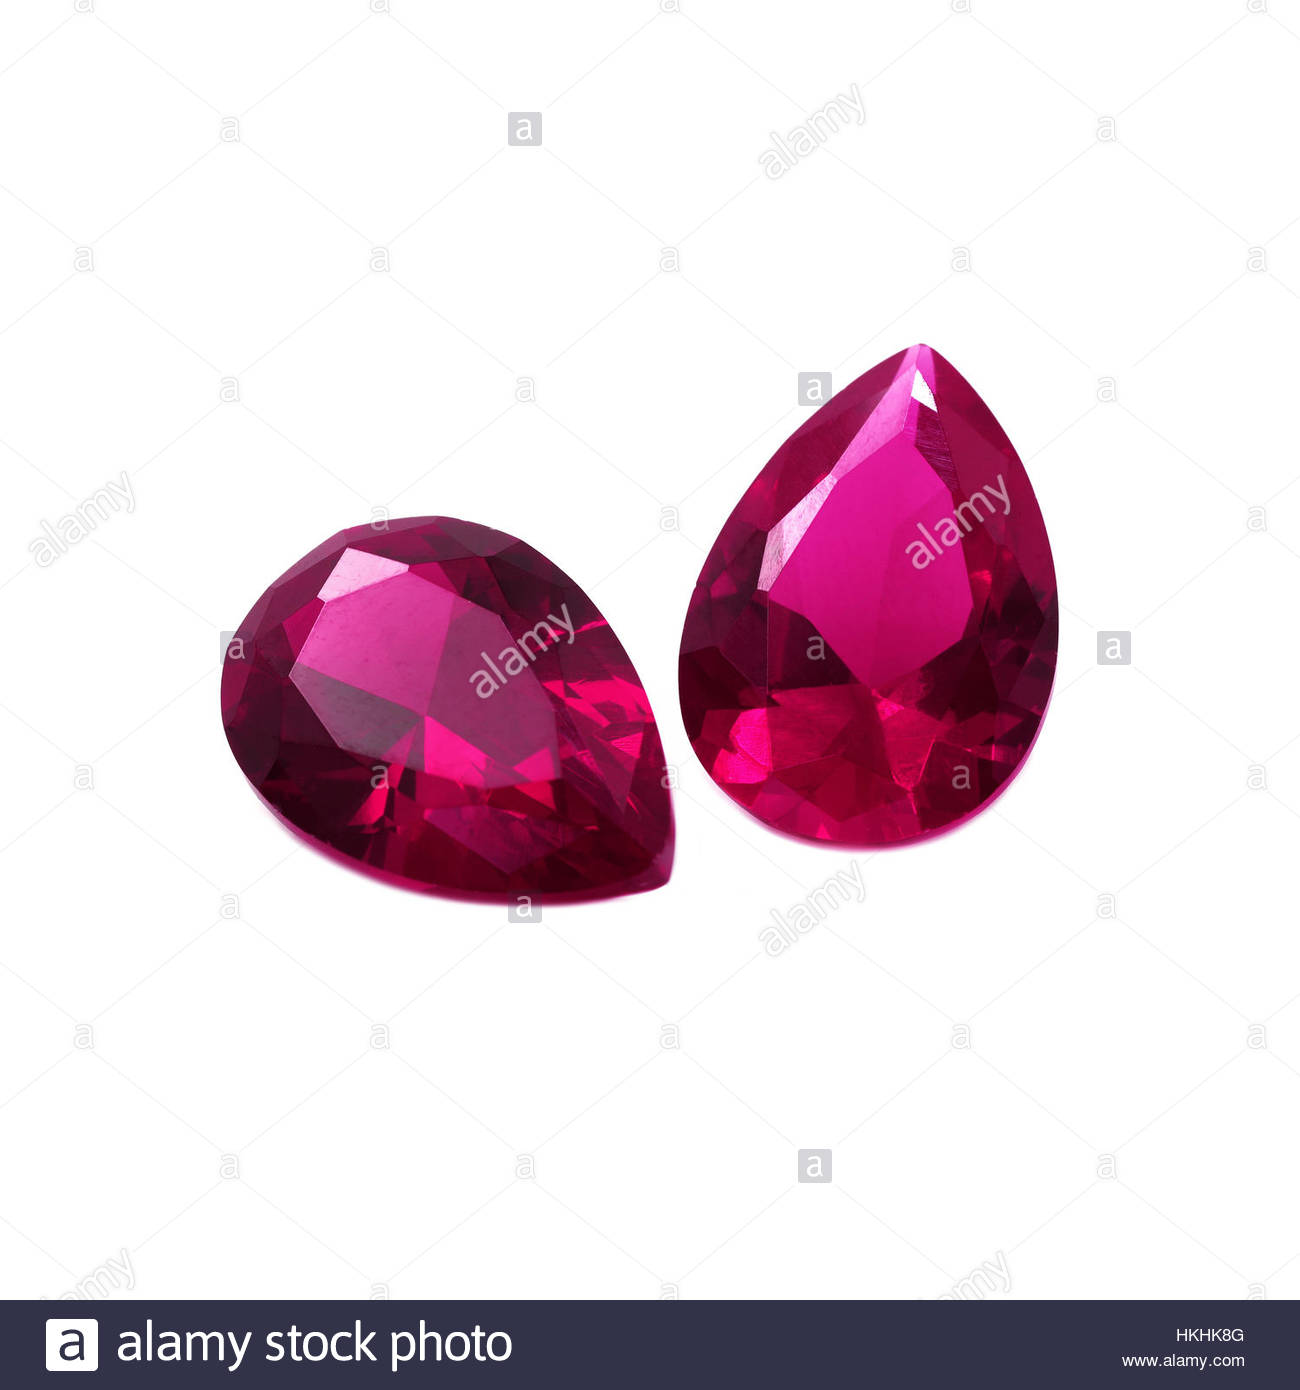 Pear Shape Diamond Cut Rubies on a White Background Stock Photo 1300x1390